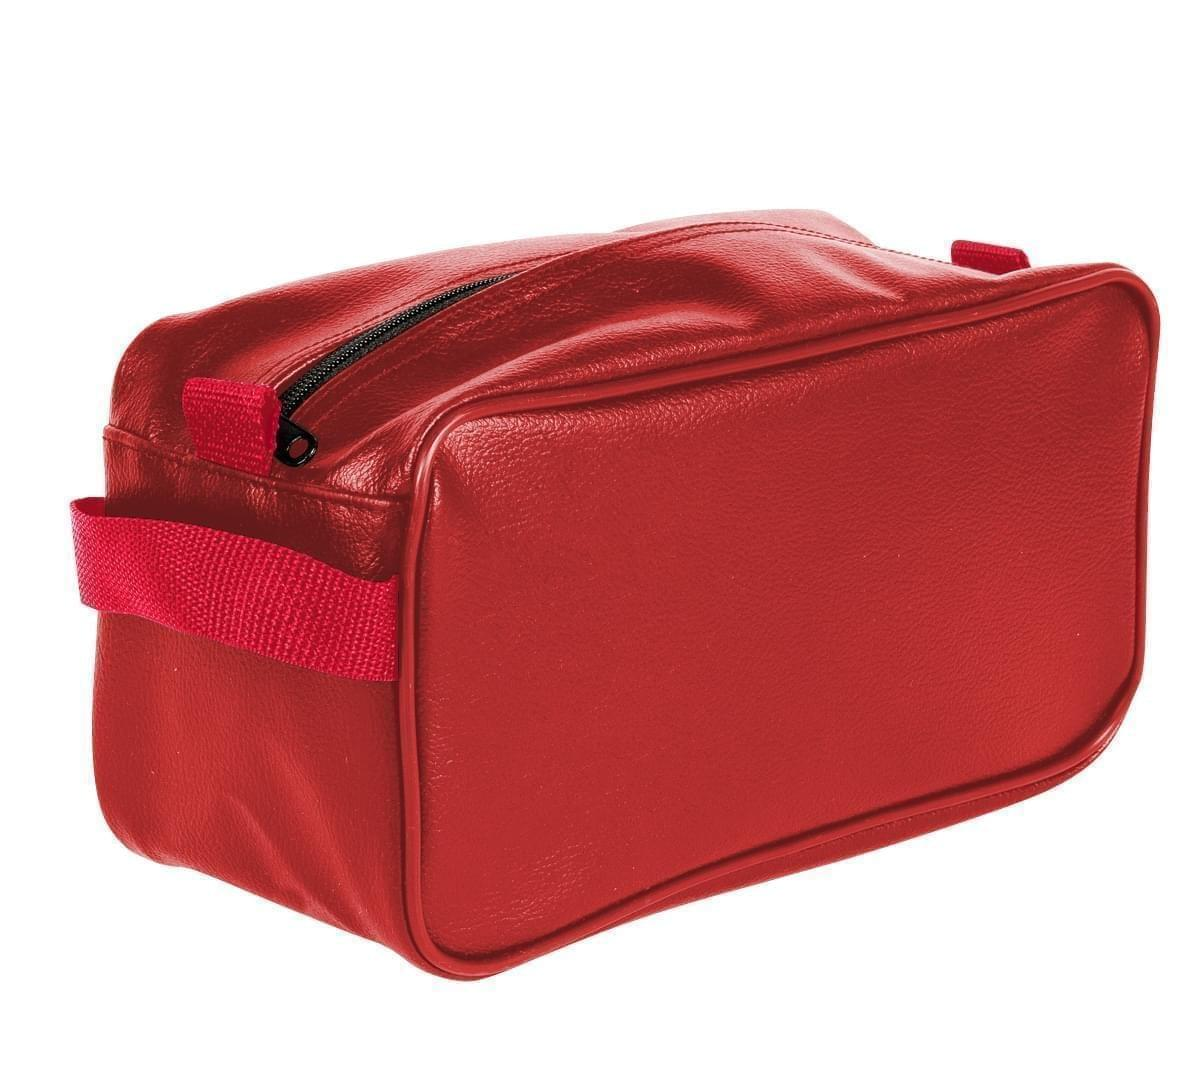 USA Made Cosmetic & Toiletry Cases, Red-Red, 3000996-AZ2